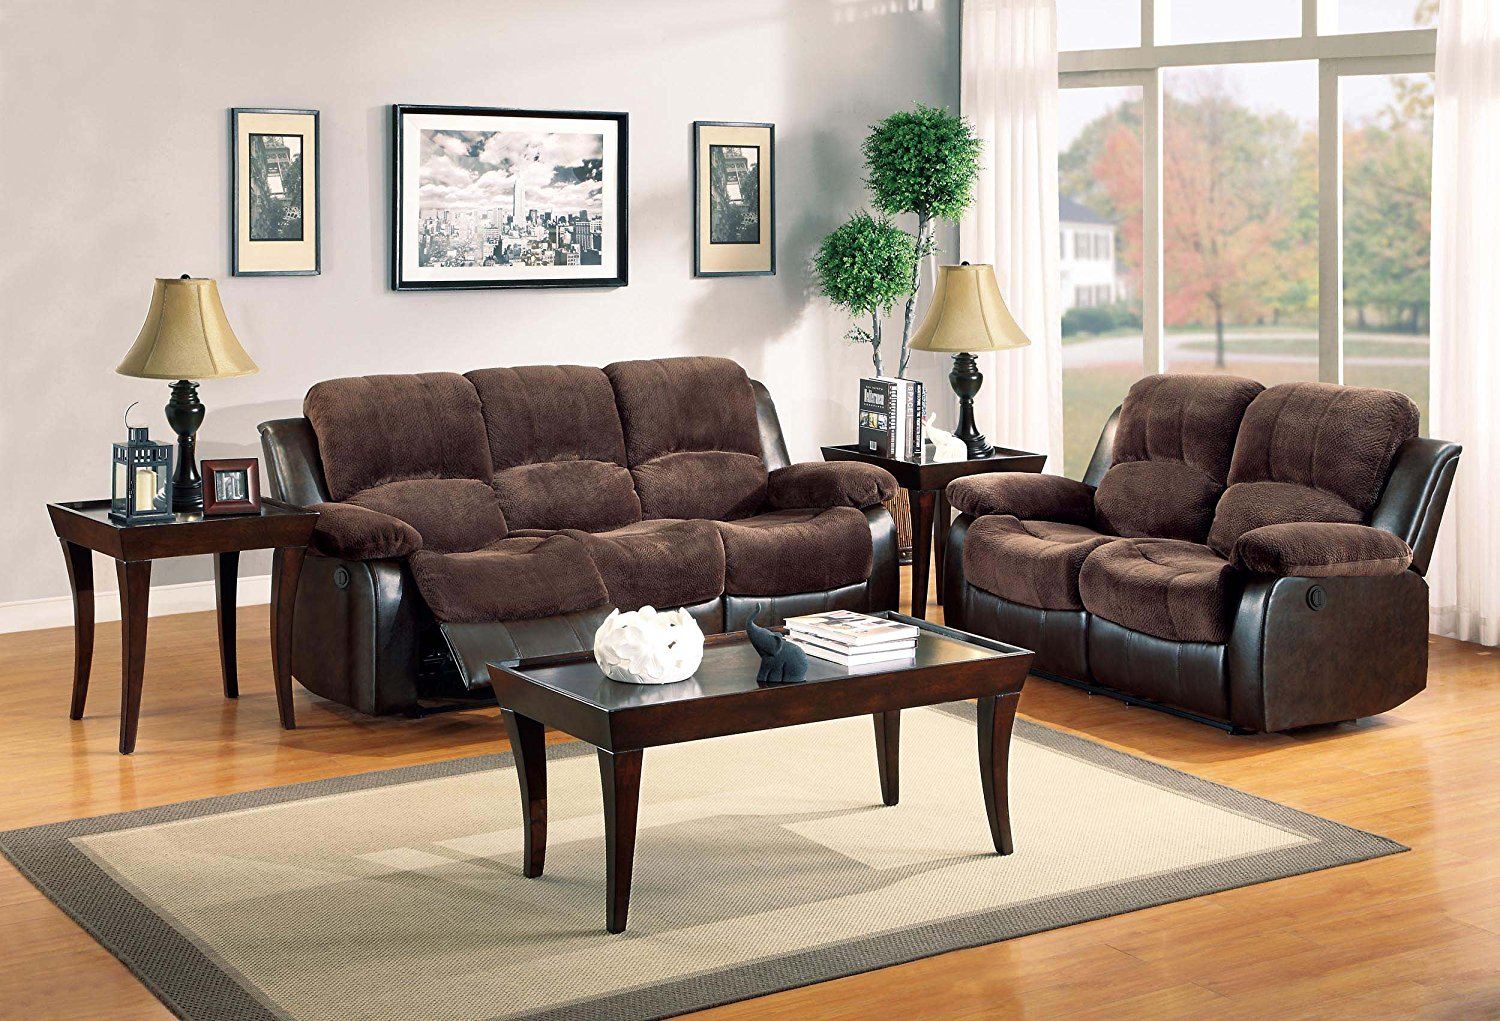 Surprising Homelegance Cranley 2Pc Chocolate Power Double Reclining Sofa Loveseat Set Beutiful Home Inspiration Cosmmahrainfo